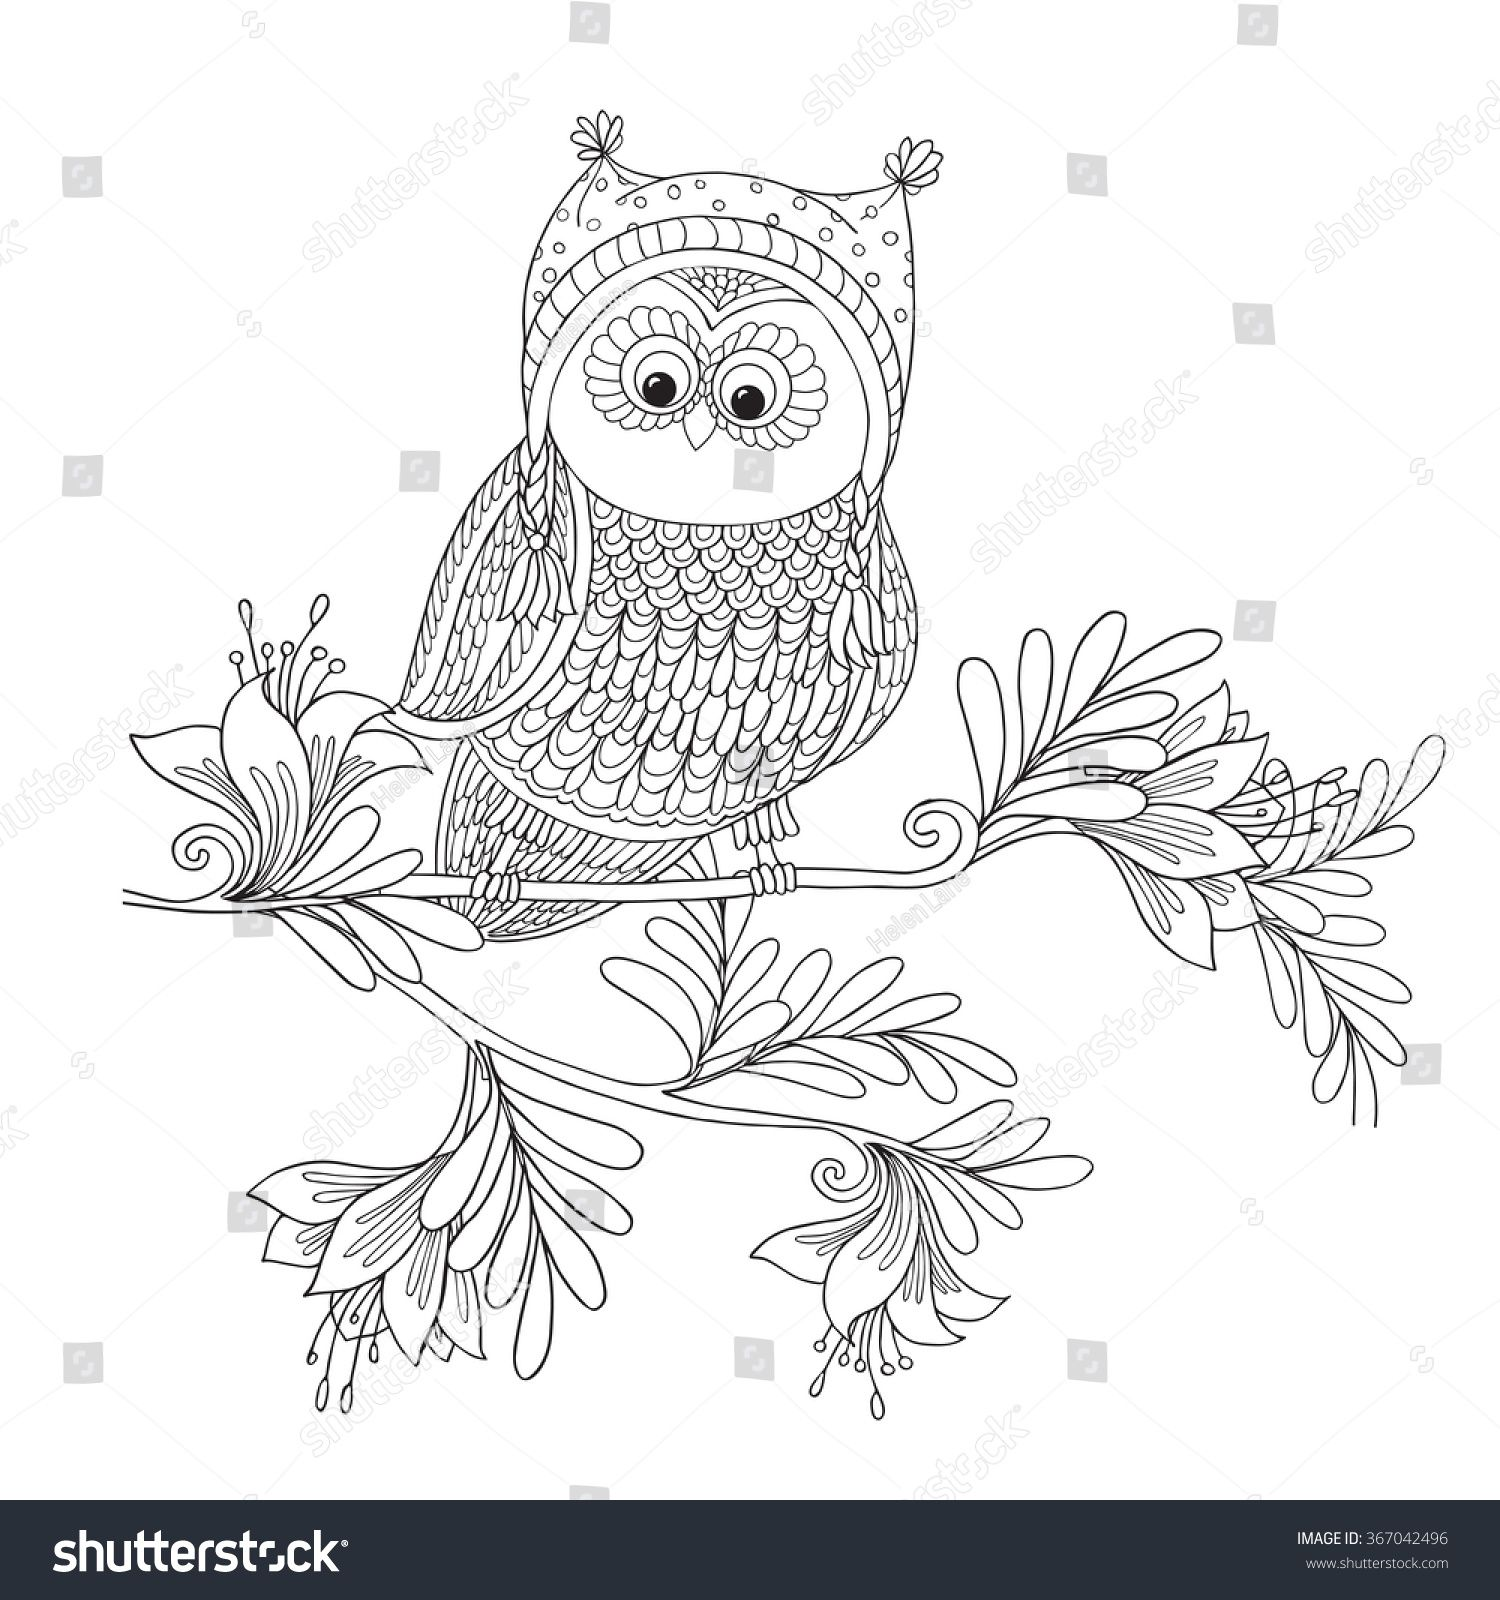 Coloring book for adult and older children Coloring page with cute